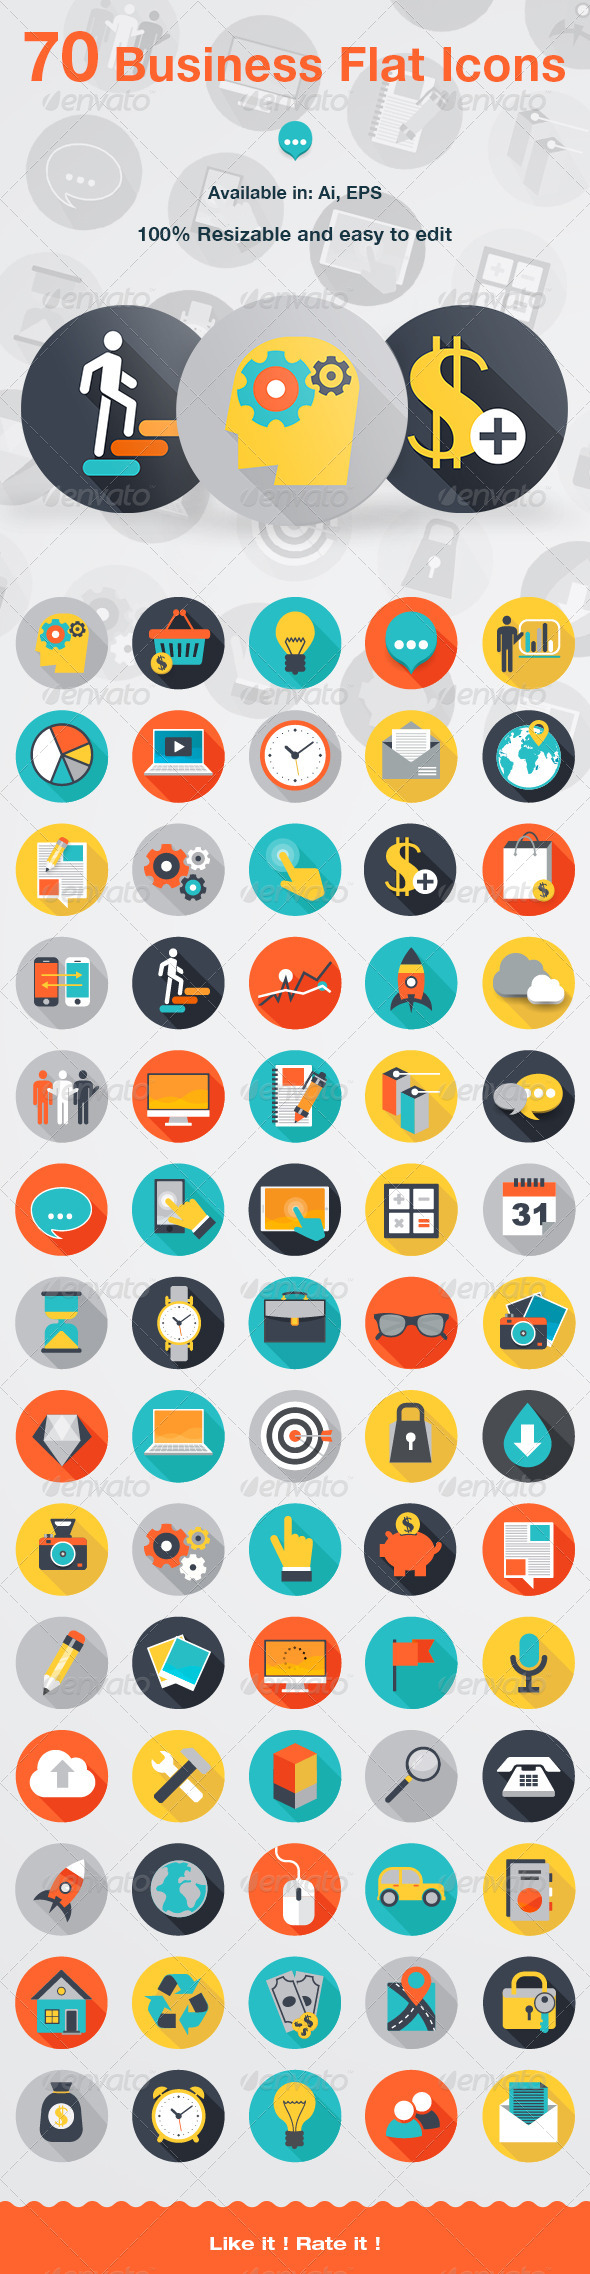 GraphicRiver 70 Business Flat Icons 7245885